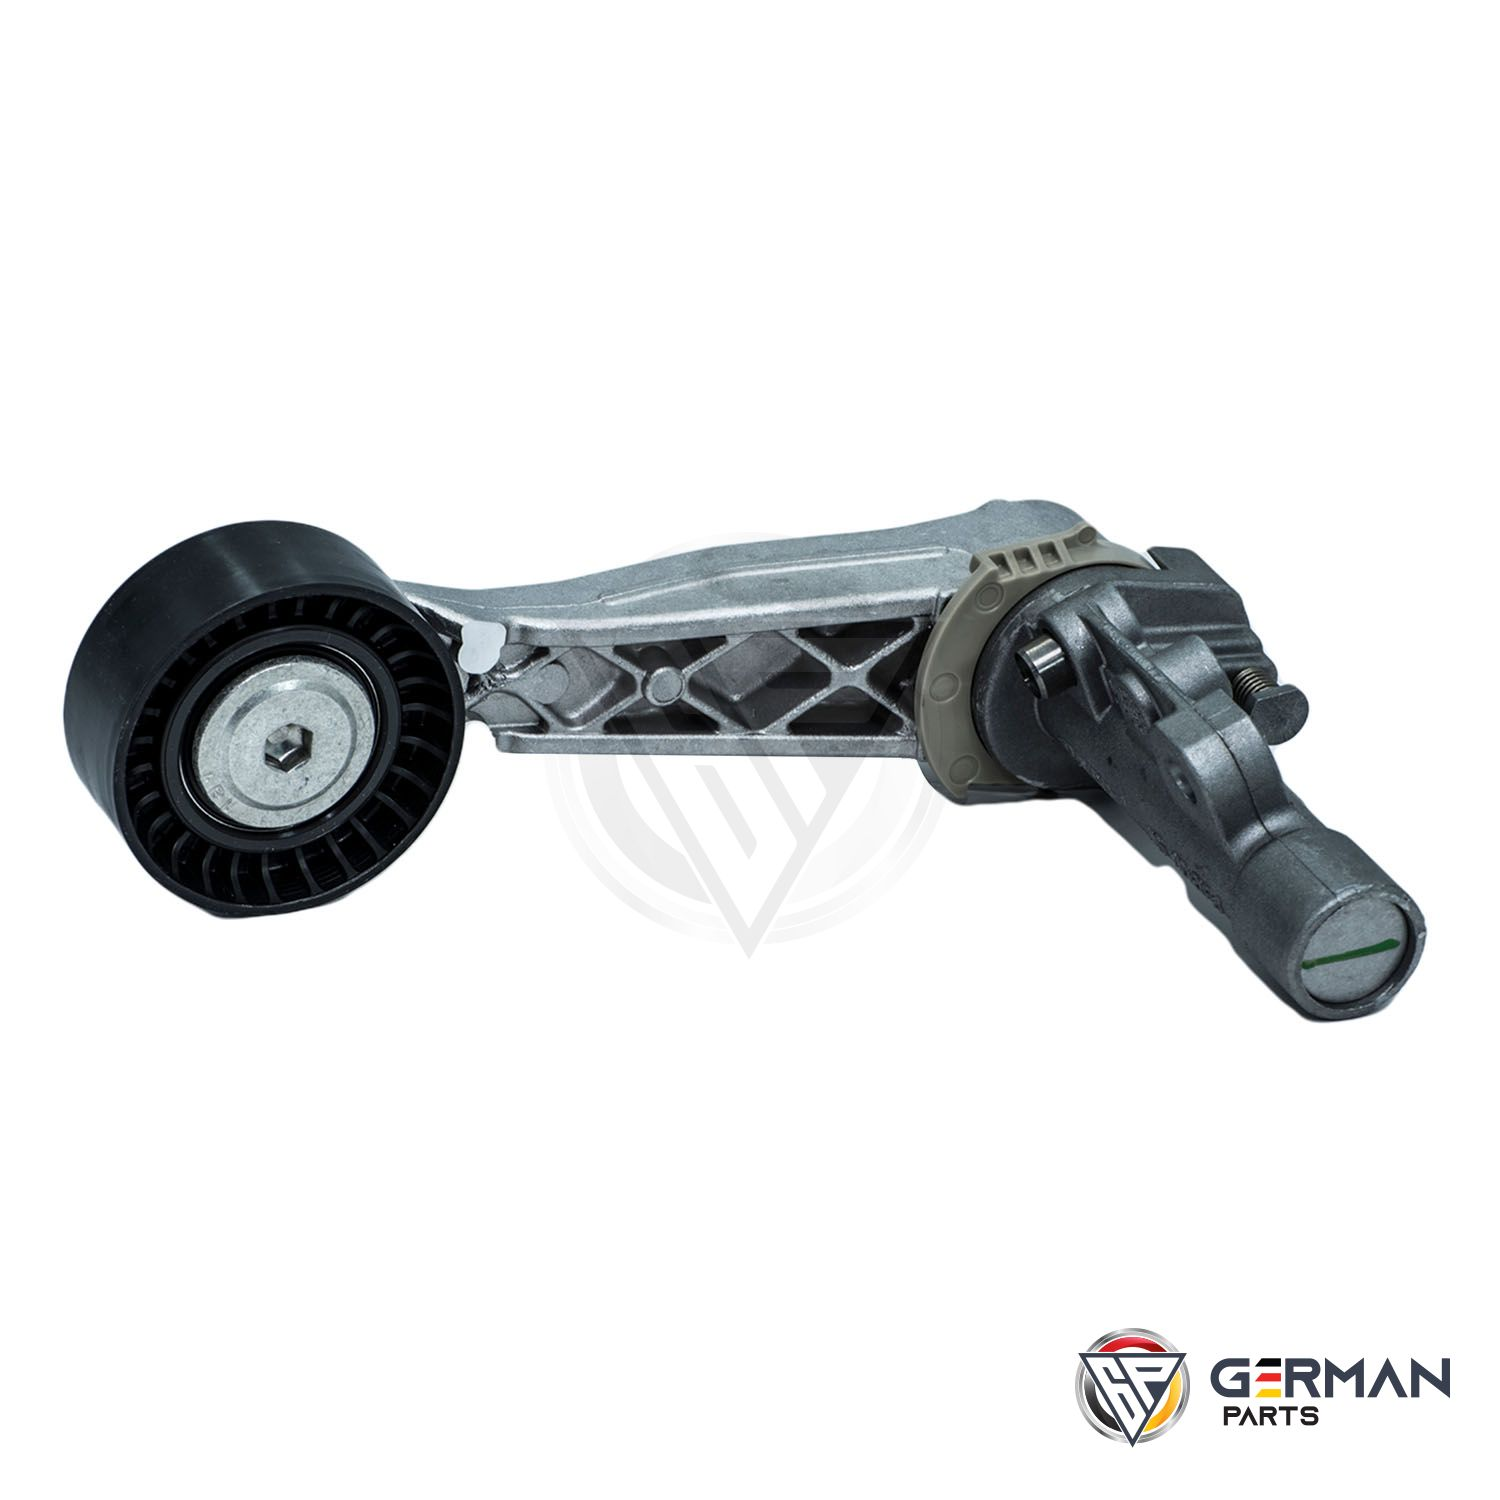 Buy Genuine BMW Belt Tensioner 11287571015 - German Parts